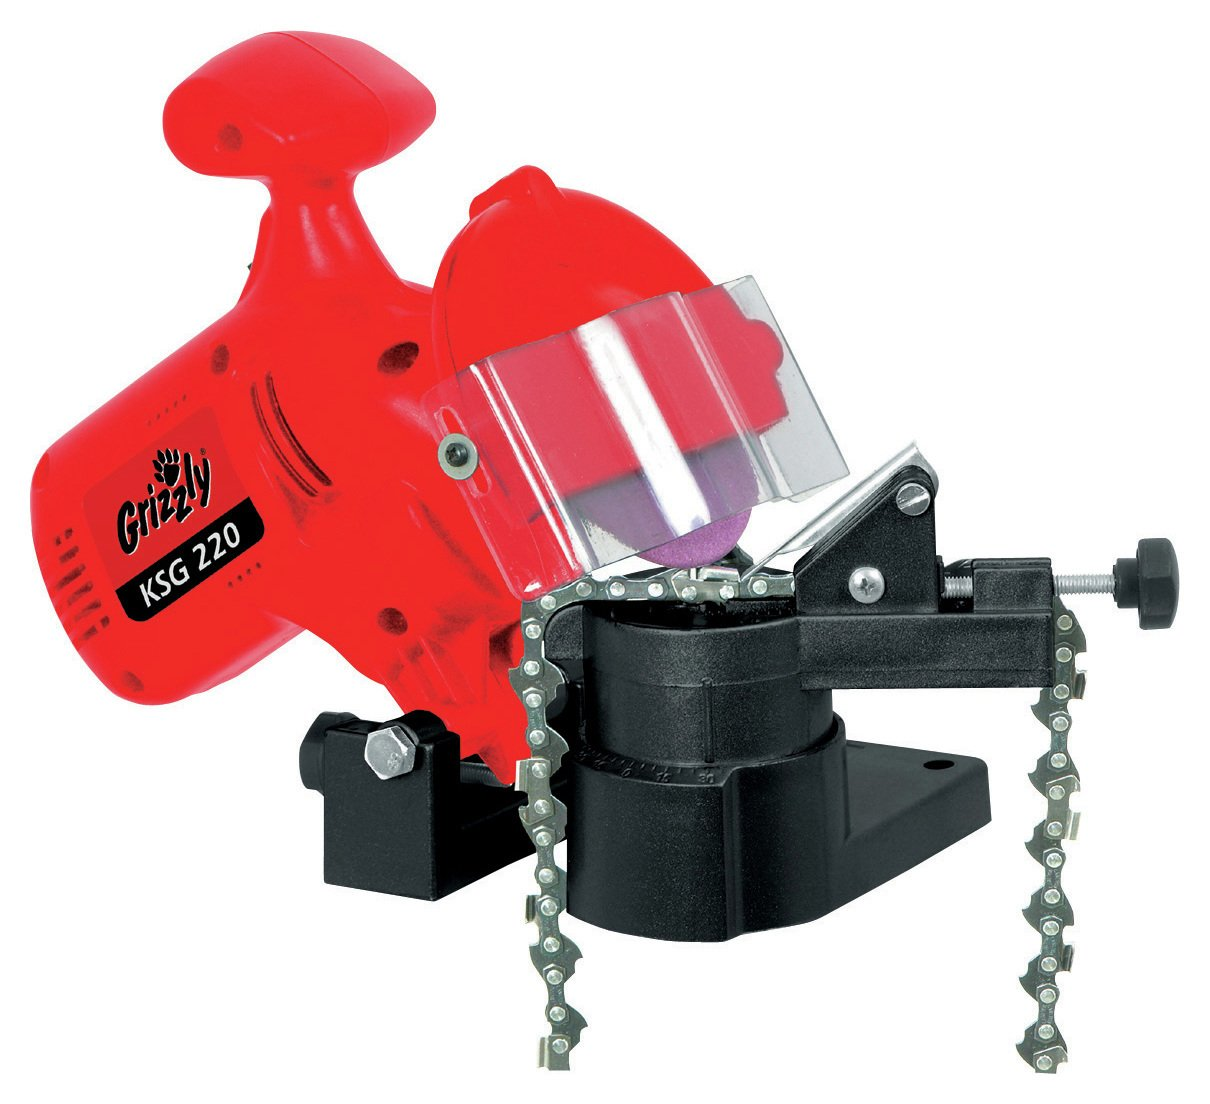 Image of Grizzly Tools Chain Sharpener.